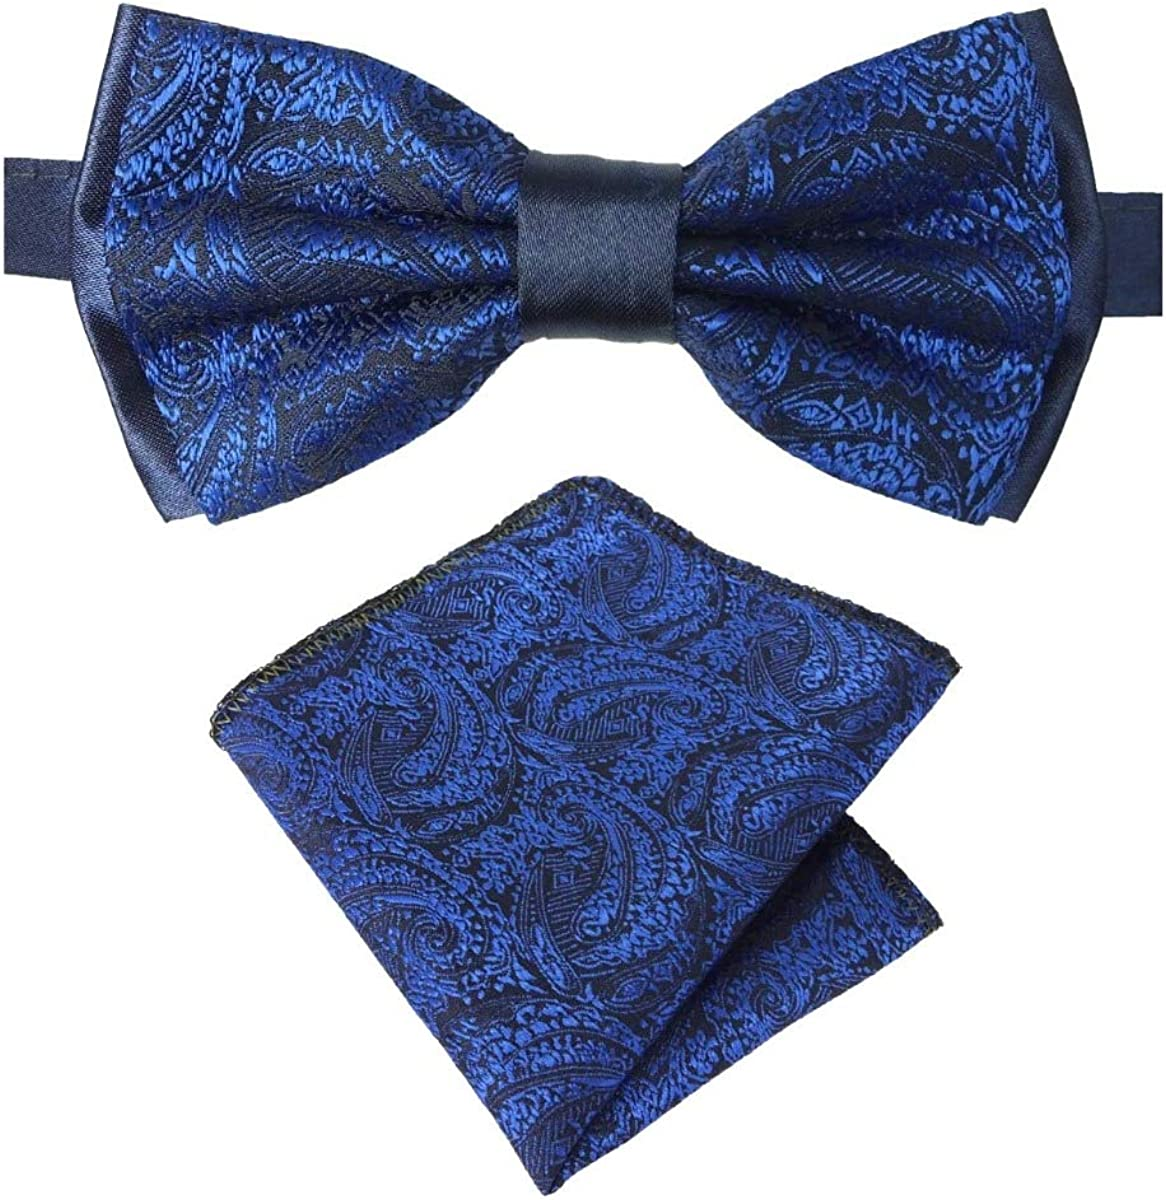 Mens Swirls Paisley Dickie Bow Tie and Hanky Sets for Formal and Special Occasion events